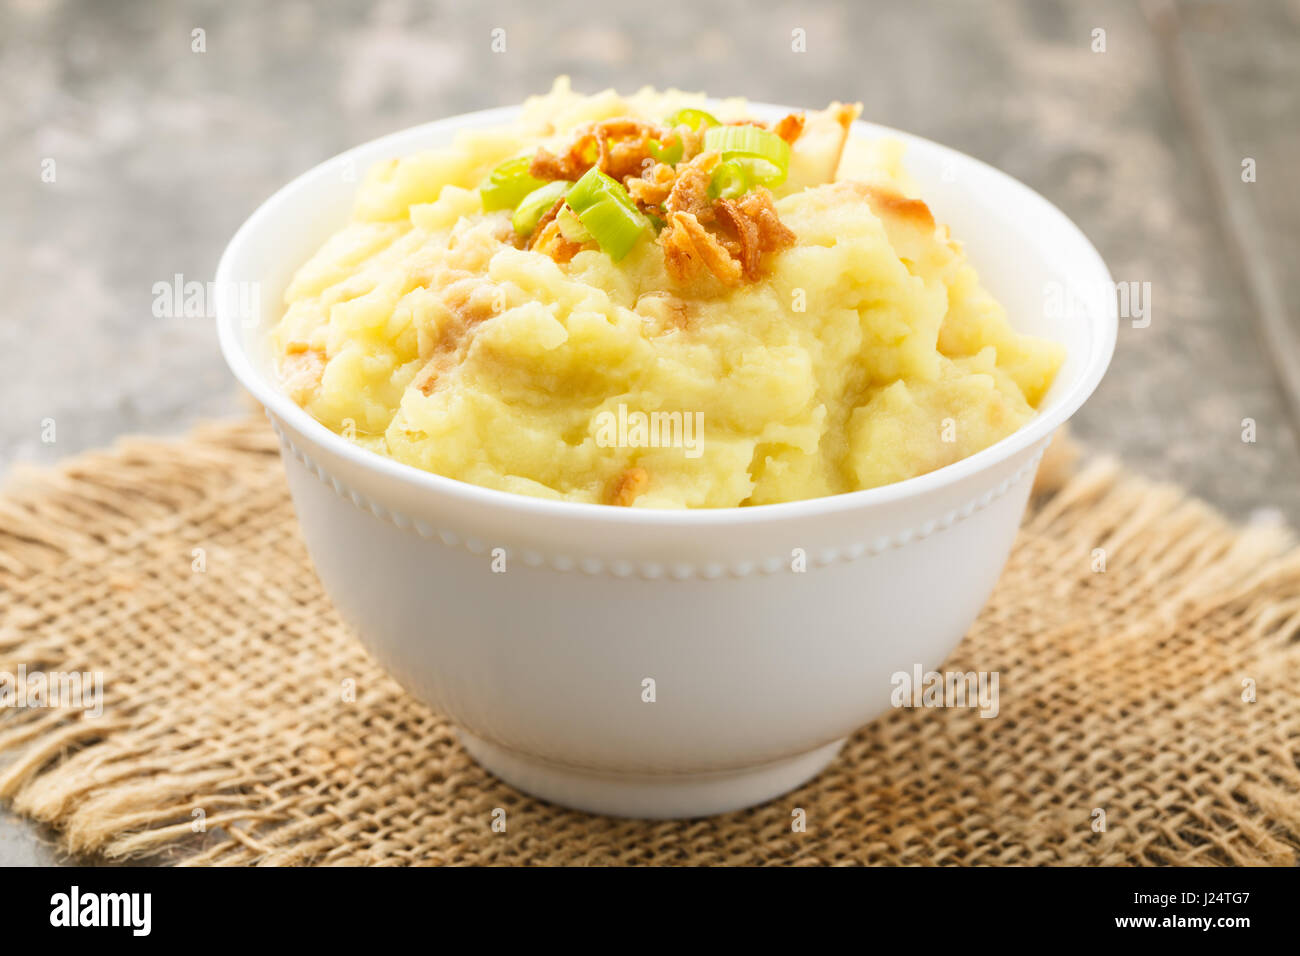 Mashed potatoes with roasted onions served in a small bowl. - Stock Image